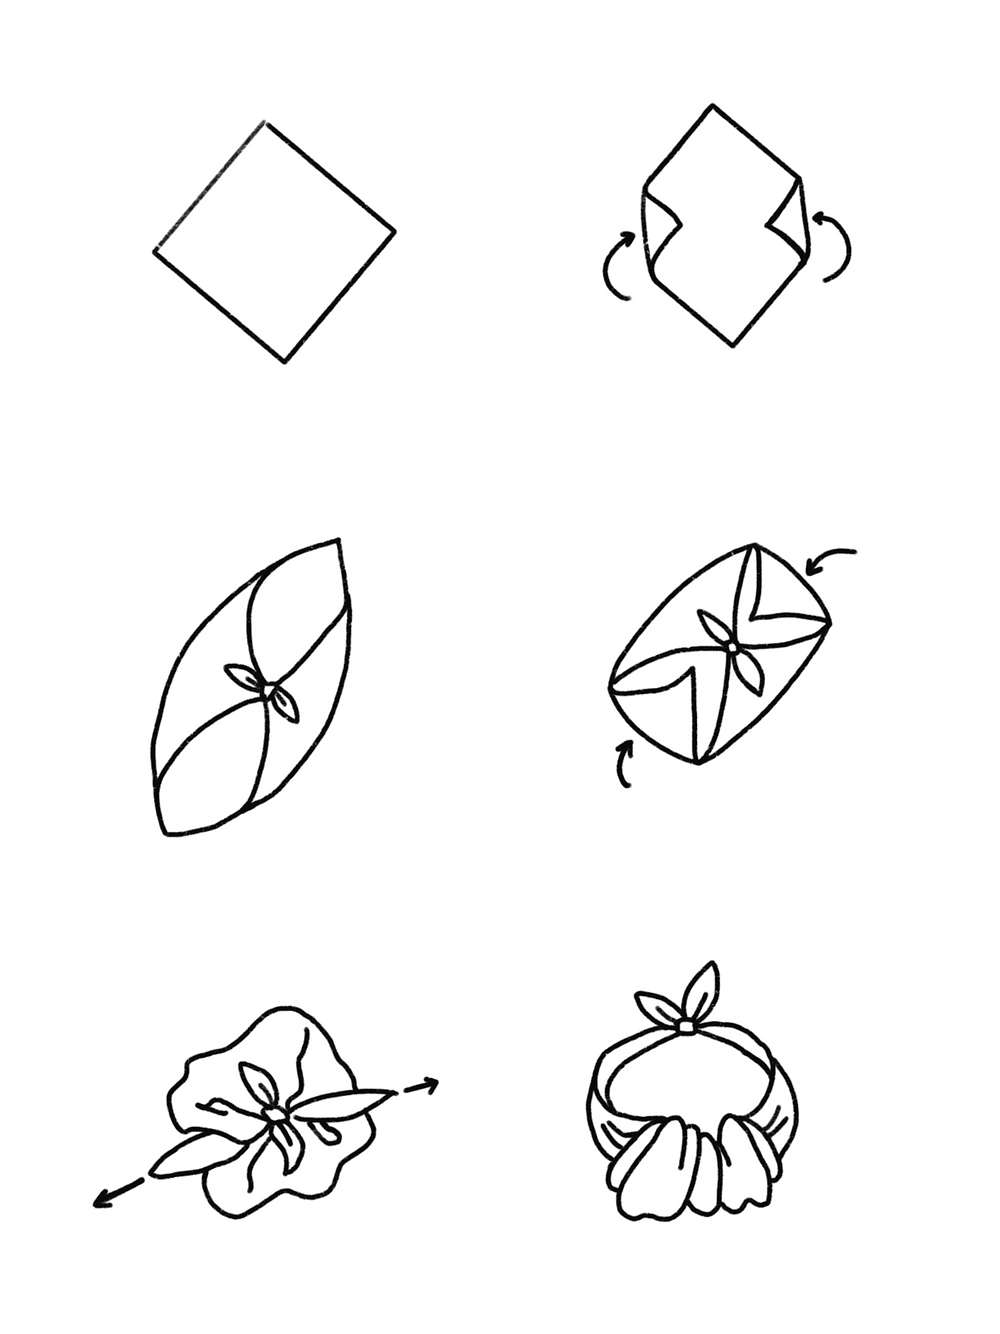 CARMENTA - drawing basket knot tutorial, Costa Rica design and art printed on fabric